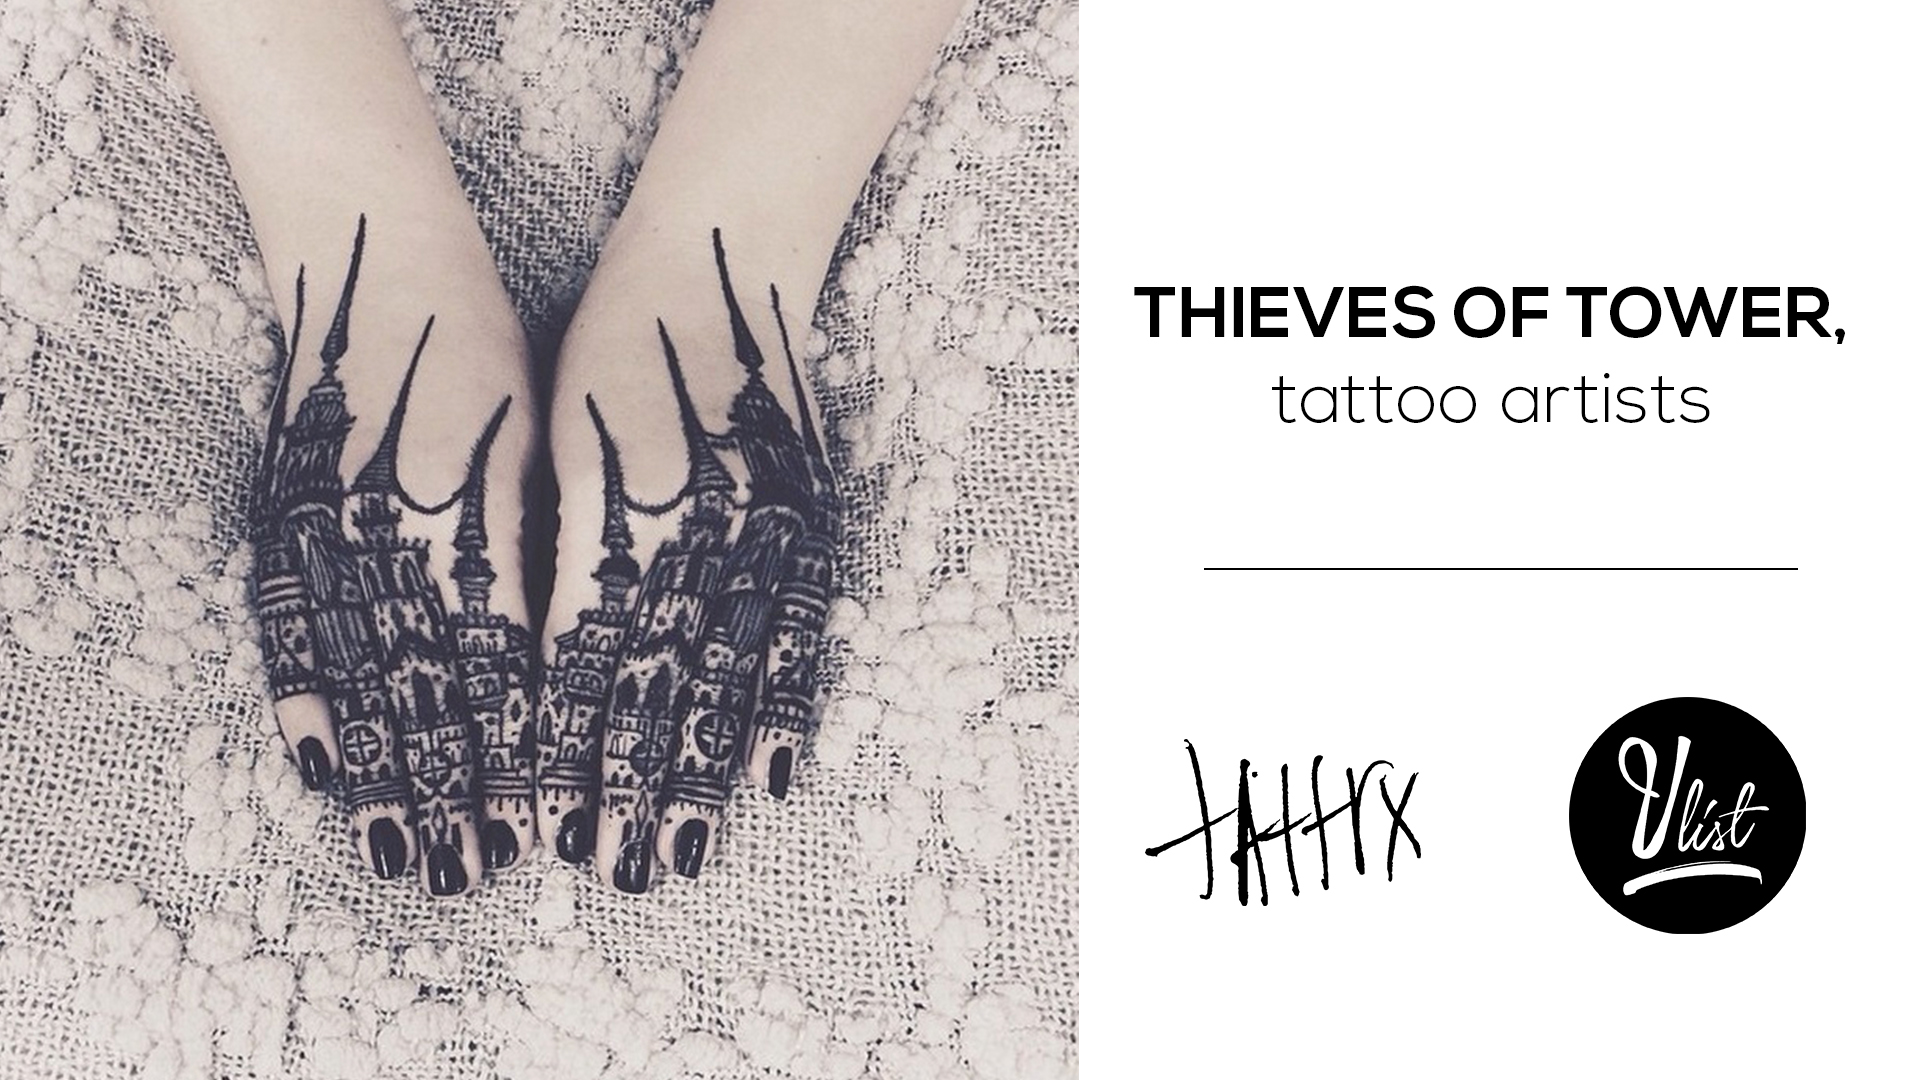 Thieves of Tower, tattoo artists 2